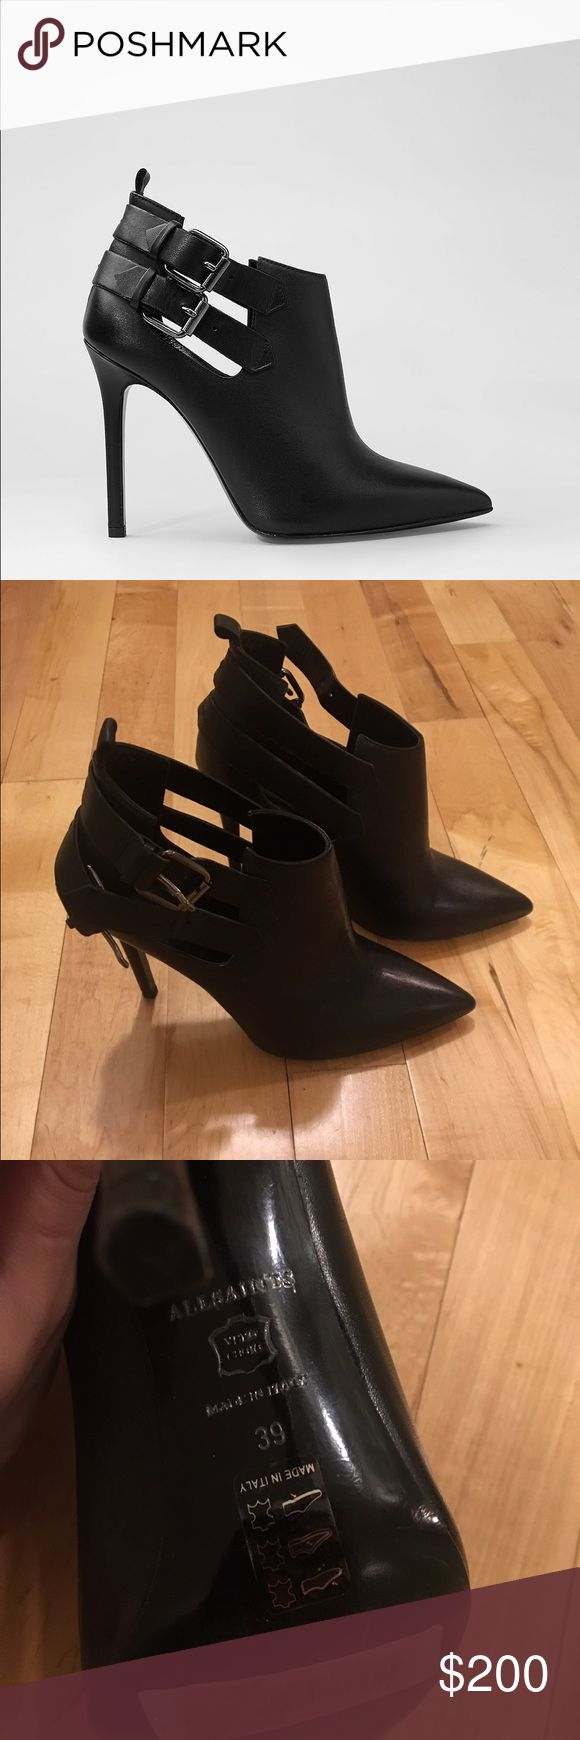 AllSaints Kira Boot in Black,  Sz 39 AllSaints Kira Boot in Black, barely worn, silver buckle and skinny heel (around 4 inches), Sz 39 (9) All Saints Shoes Ankle Boots & Booties